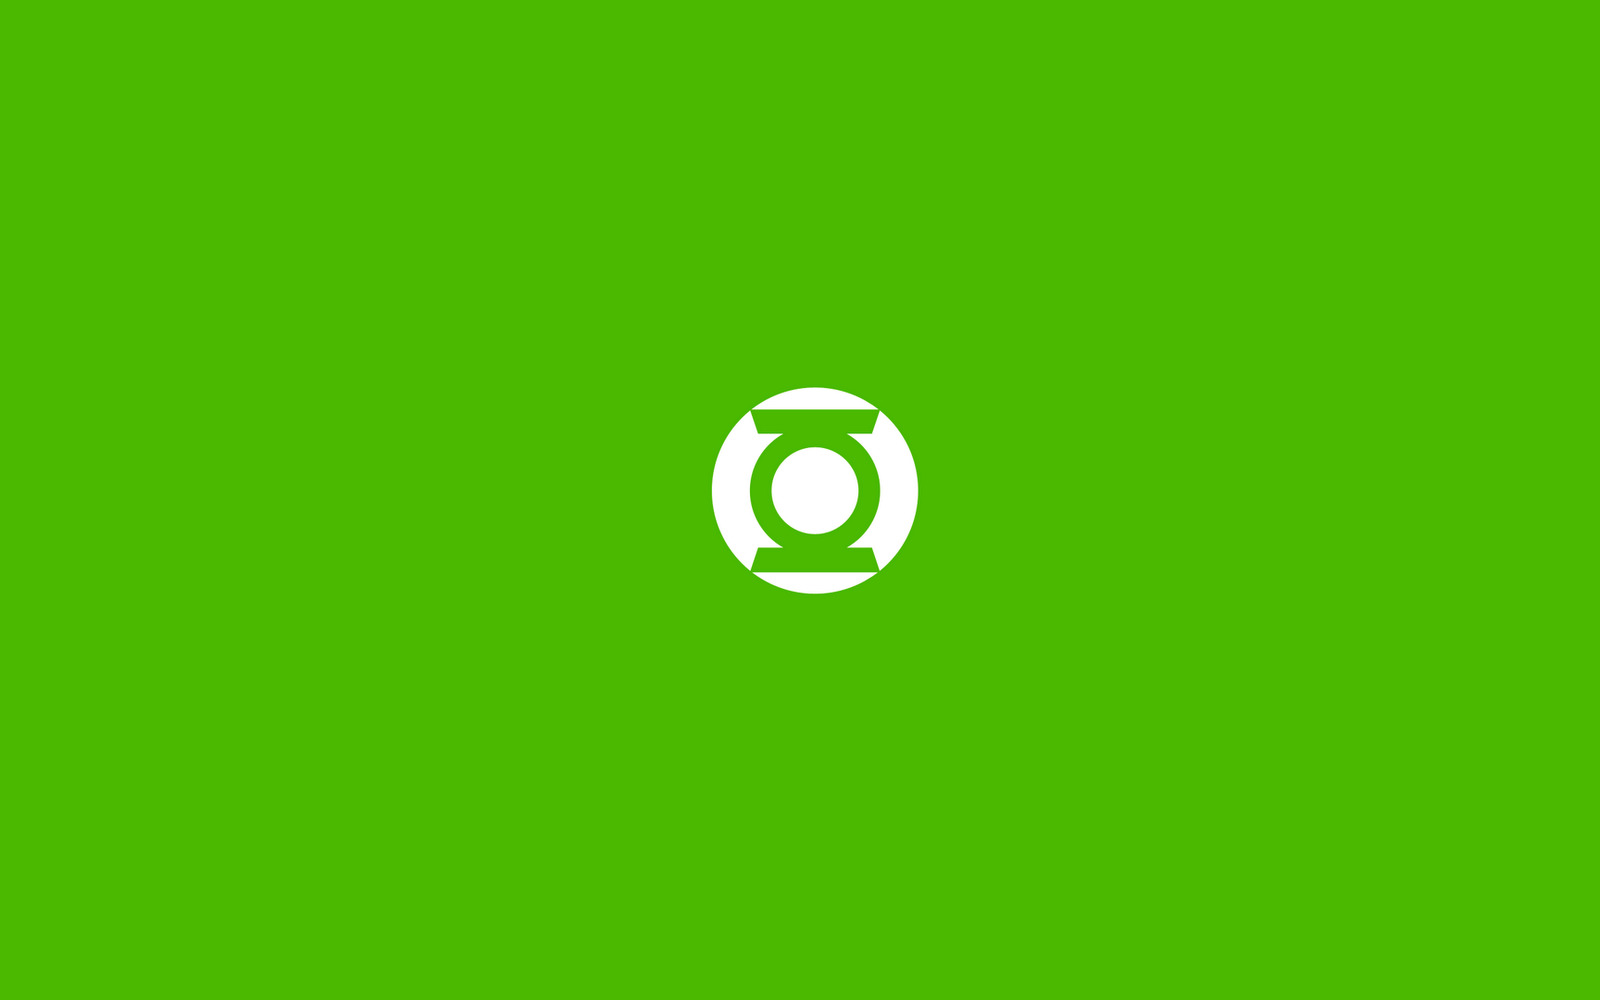 green lantern comics logo minimal hd wallpapers hq